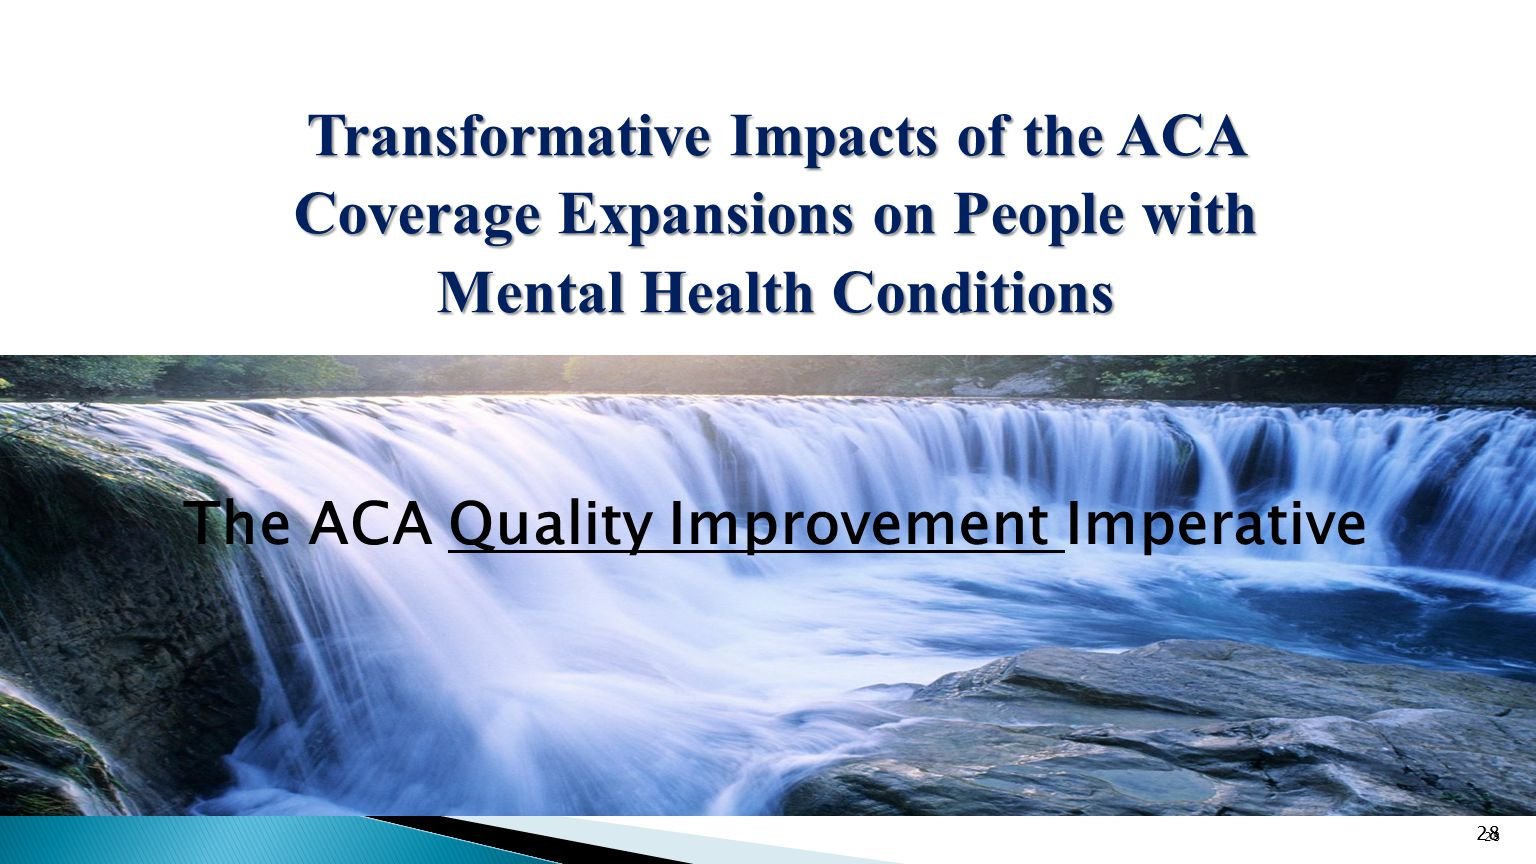 28 Transformative Impacts of the ACA Coverage Expansions on People with Mental Health Conditions 28 The ACA Quality Improvement Imperative